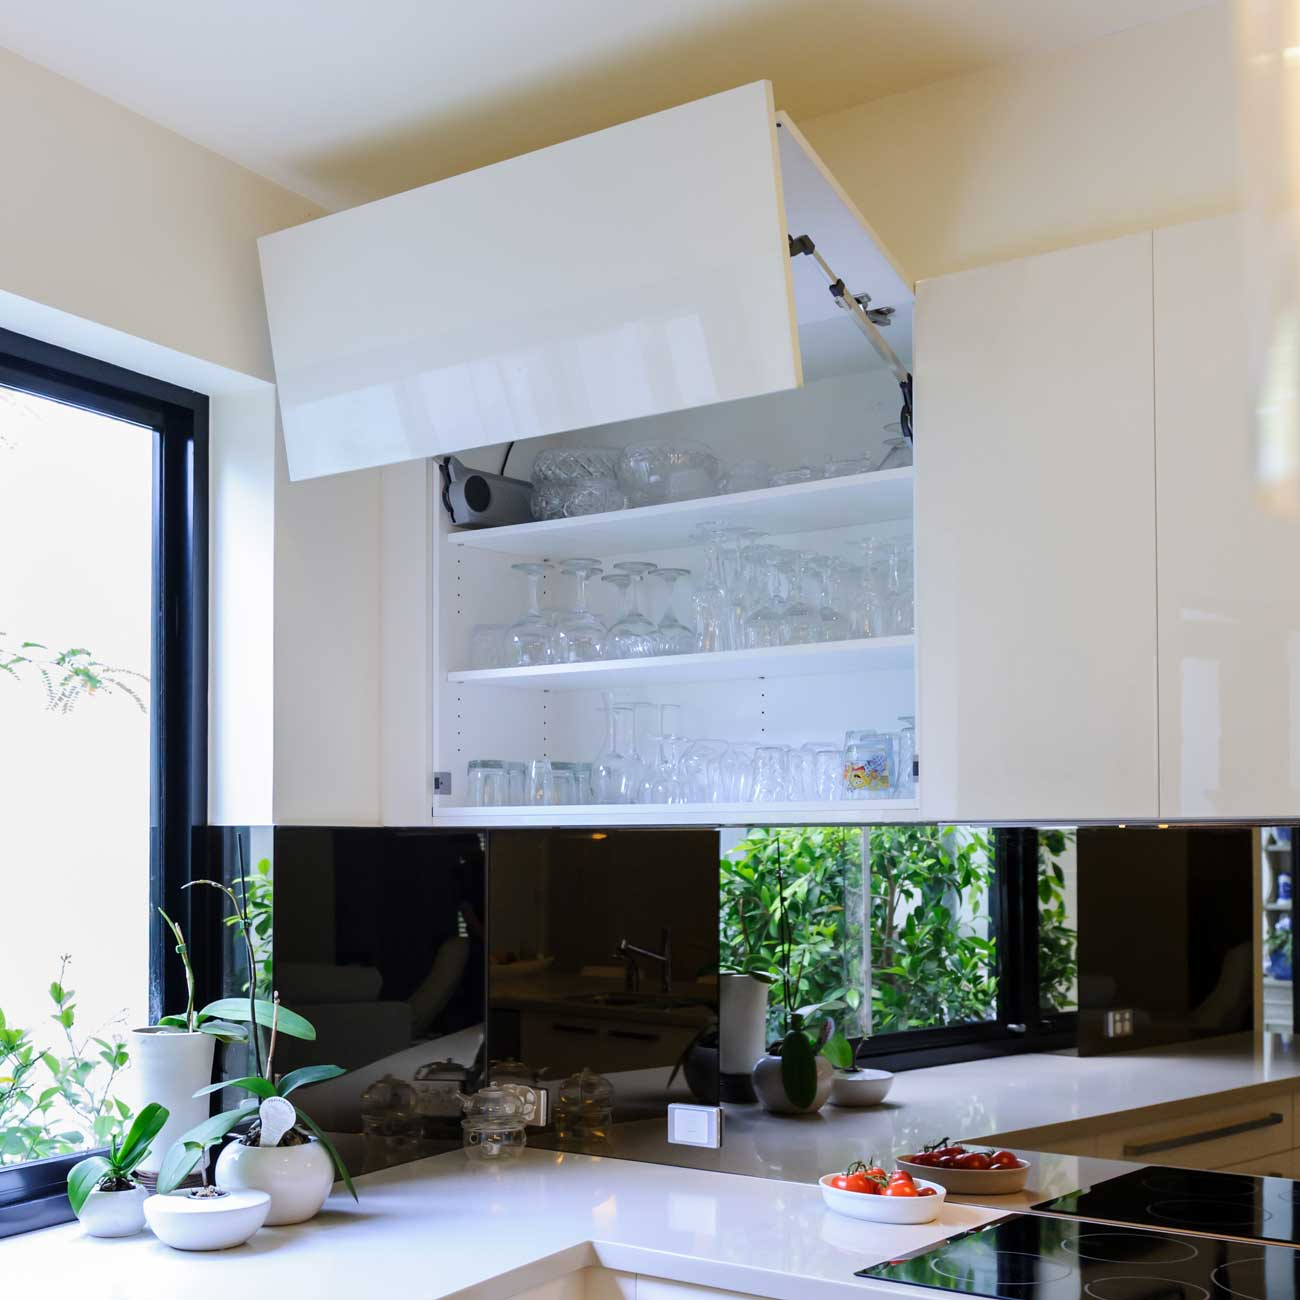 Kitchen Renovations Melbourne: Kitchen Renovations In Melbourne